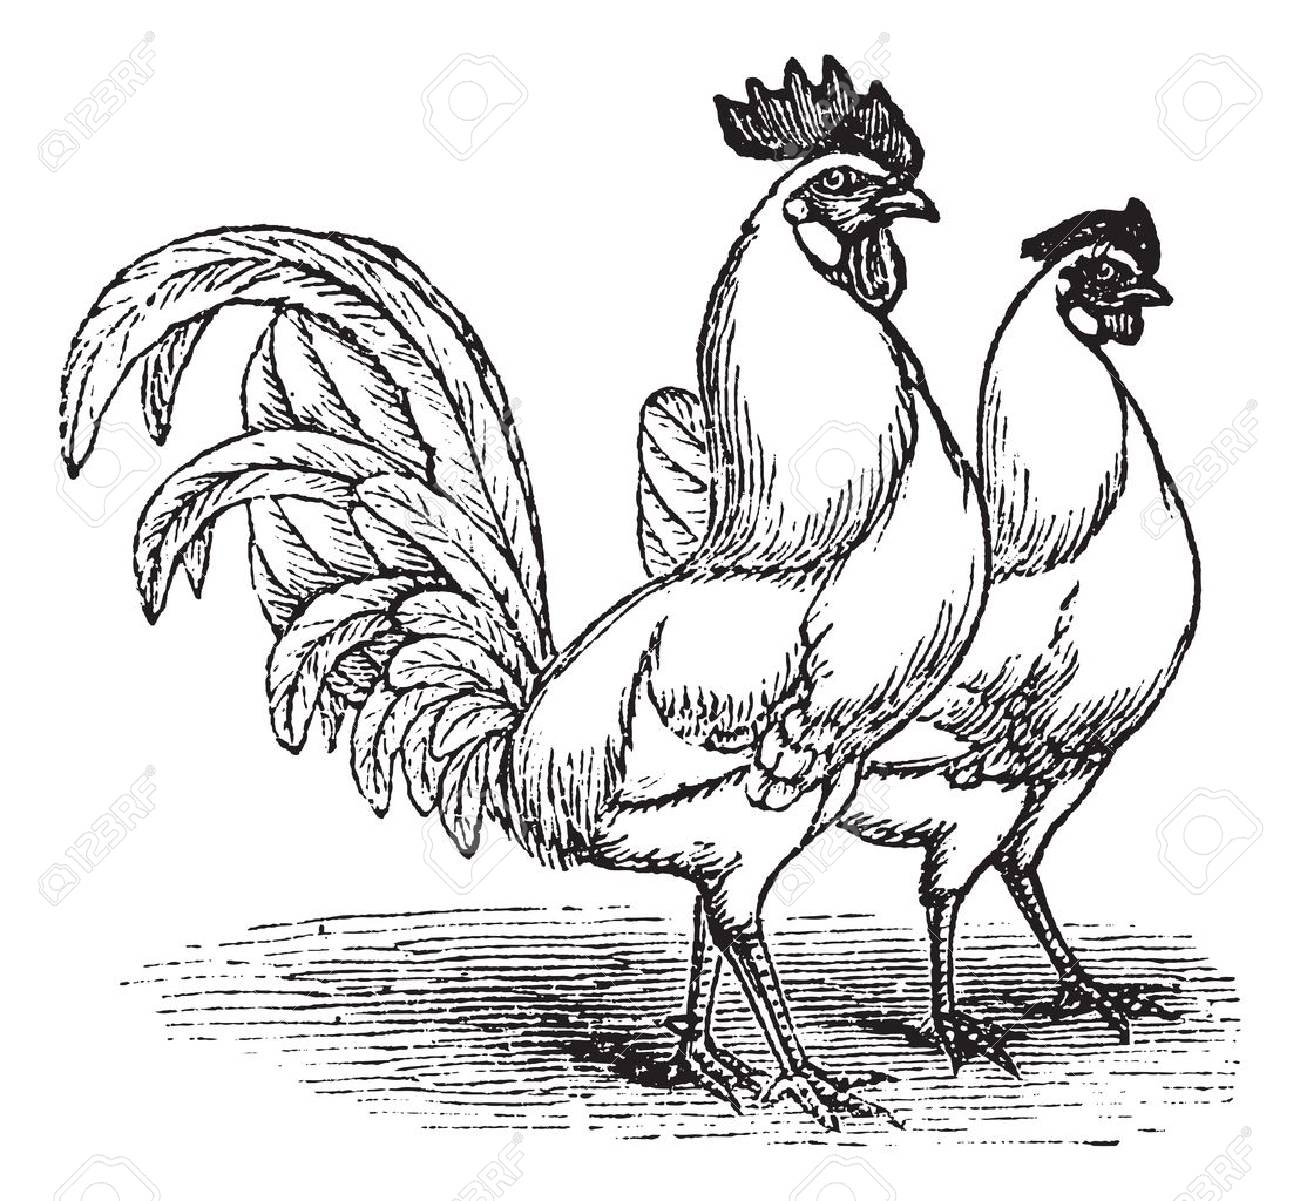 Male and female of White Leghorns (chicken), vintage engraving. Old engraved illustration of Male and female of White Leghorns chicken. Stock Vector - 13766855